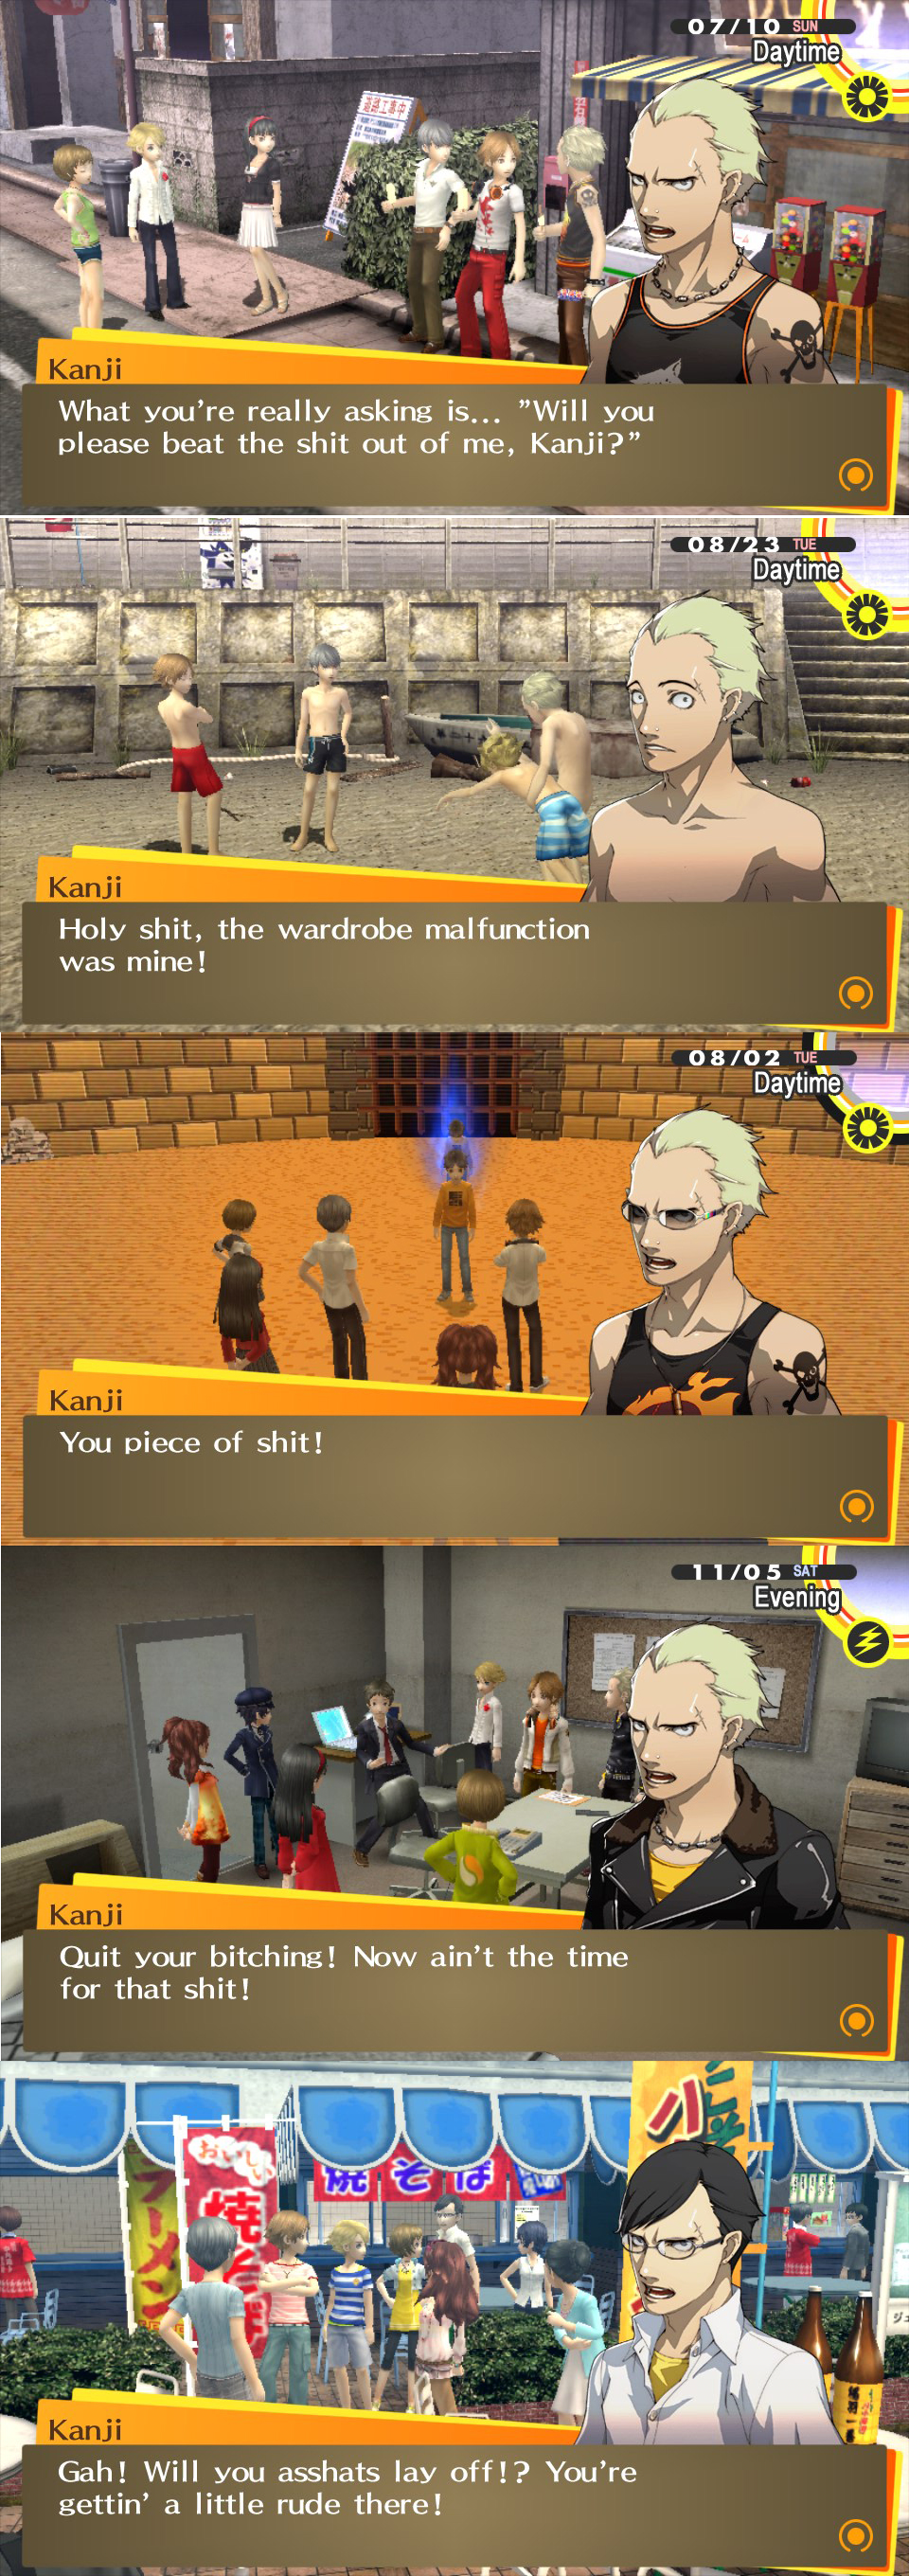 Kanji is full of shit Persona 4: The Golden; Pictorial!